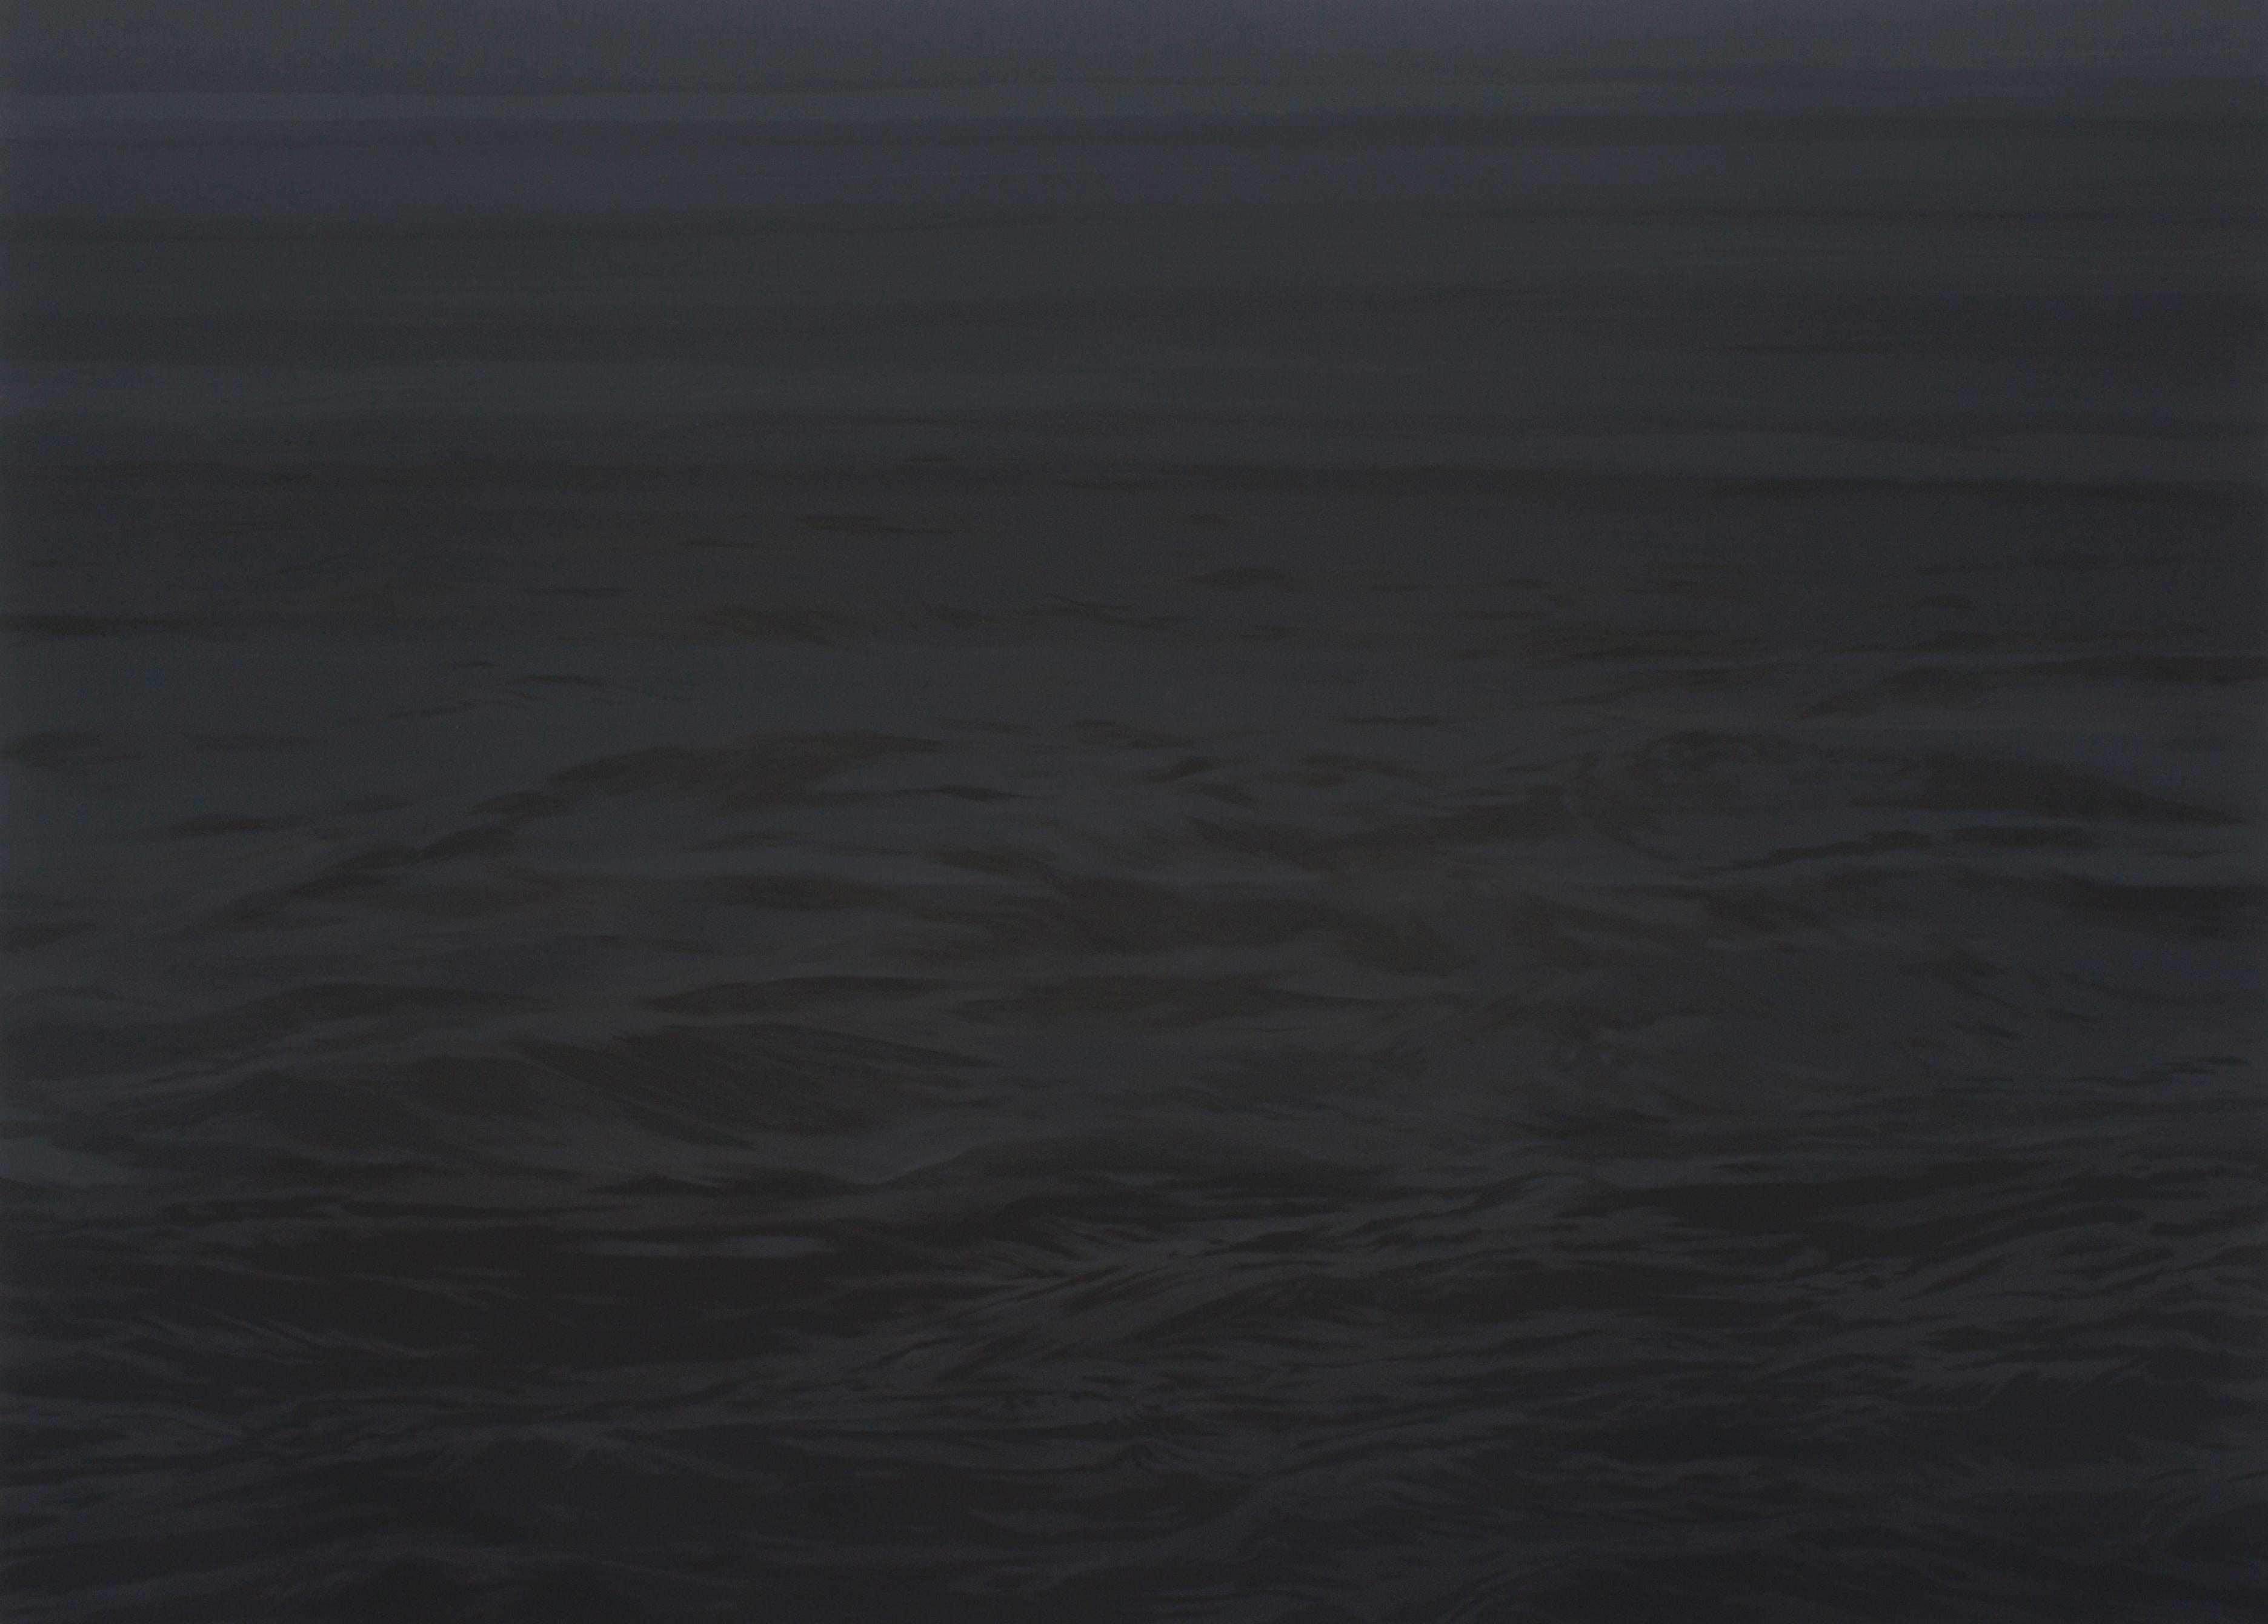 Black Water  - (The Sea) - Large Format Painting, Landscape, Water, Dark Blue